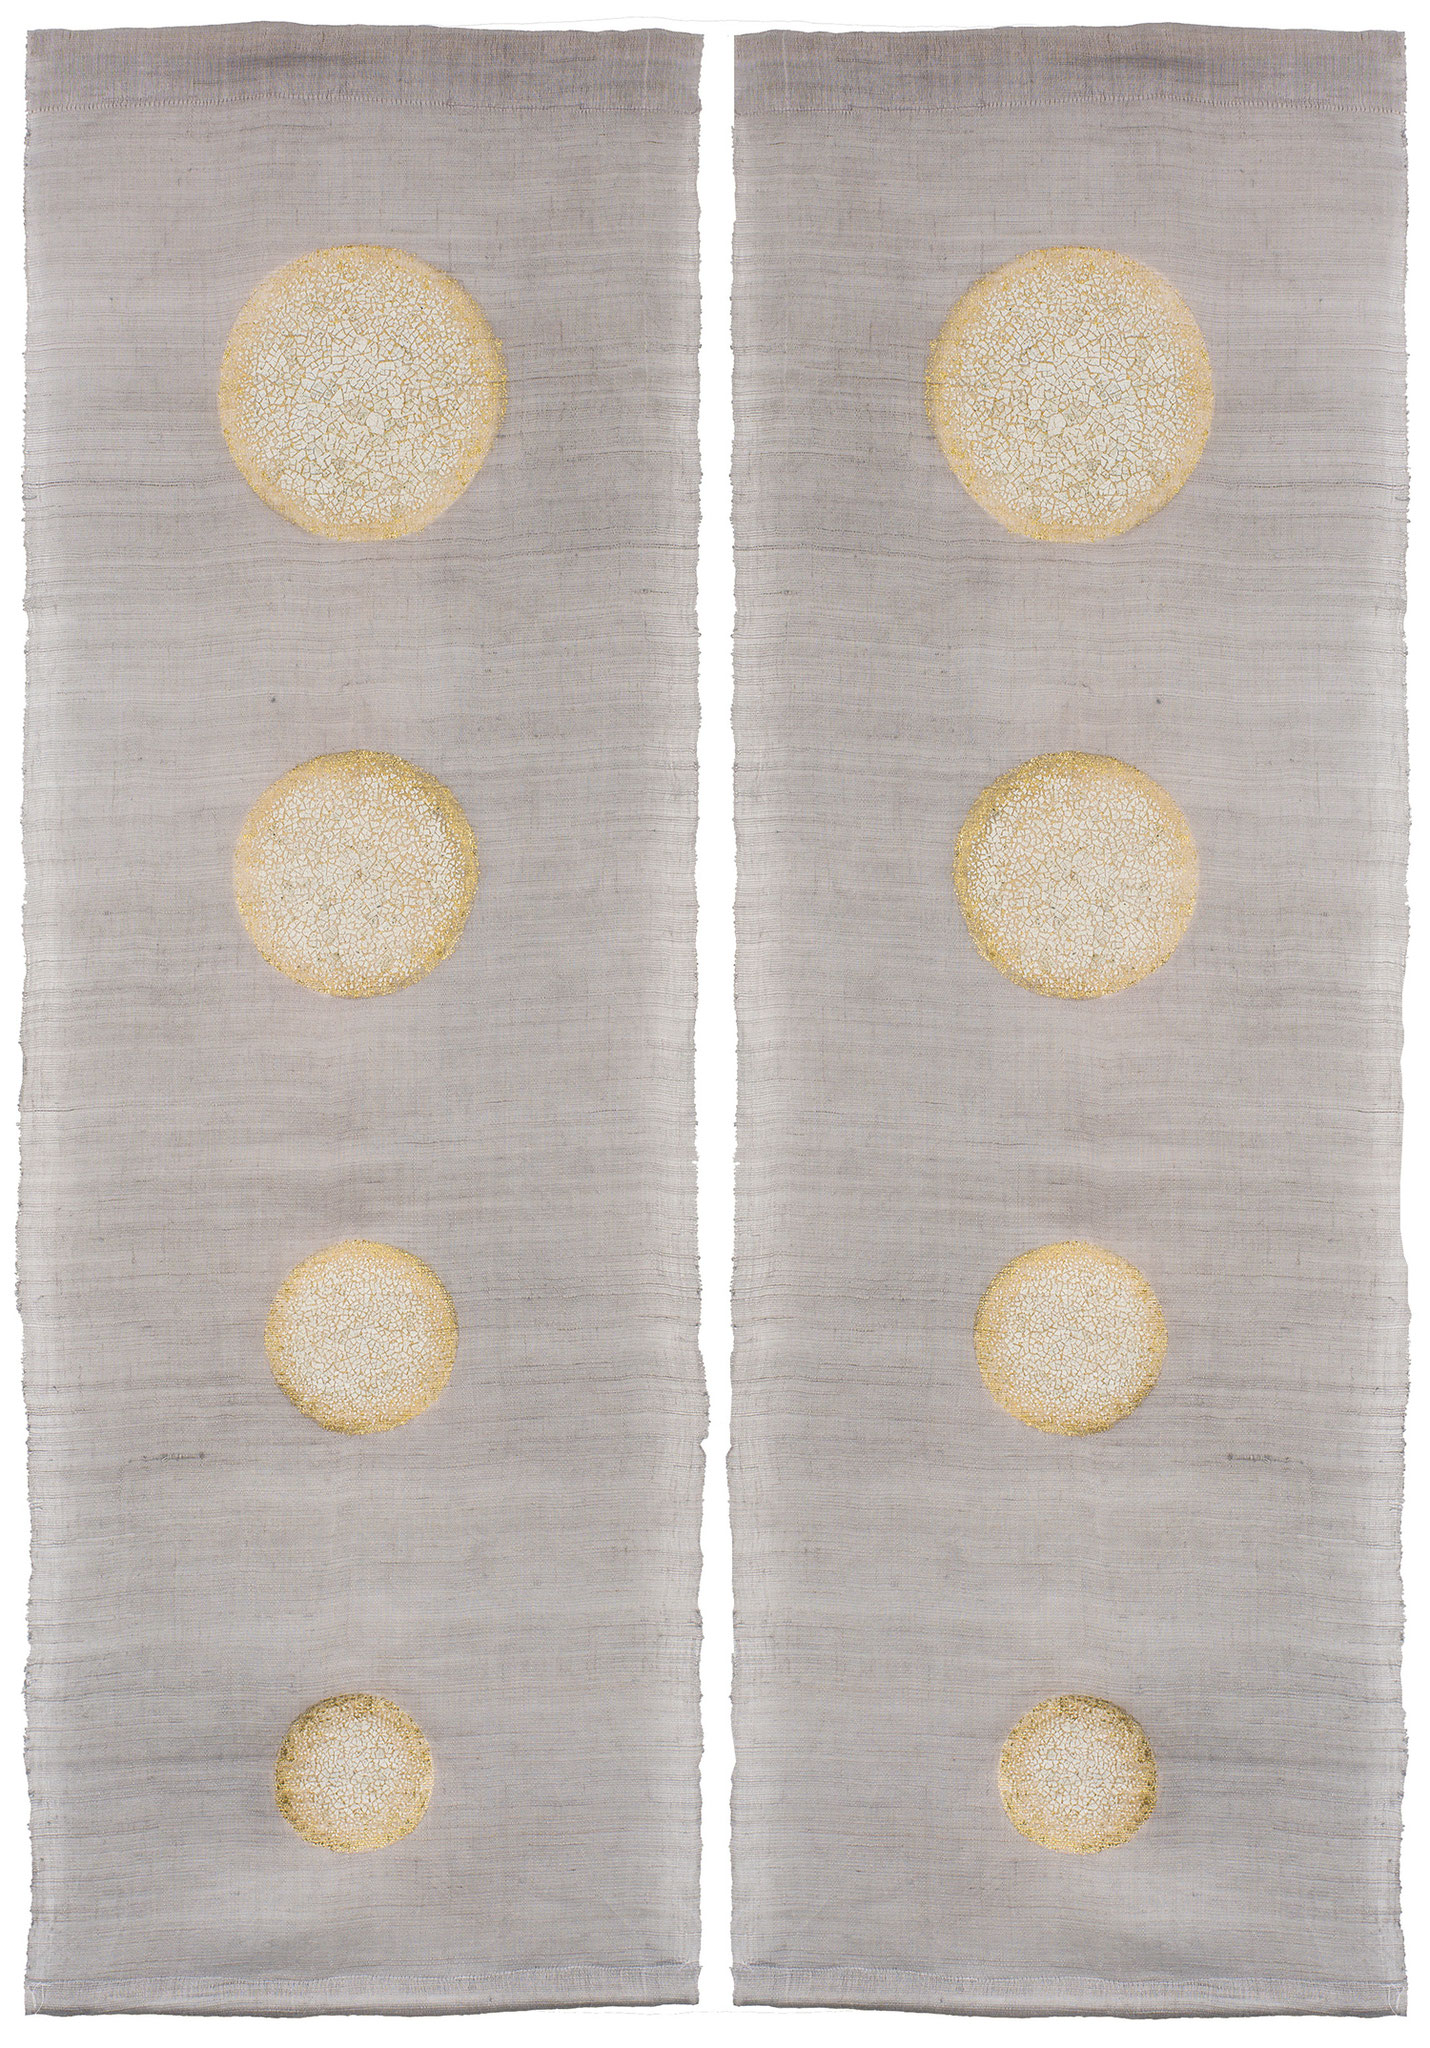 Moonrise - Hemp fabric from China with gold leaves and eggshells - Size : 90 x  150 cm